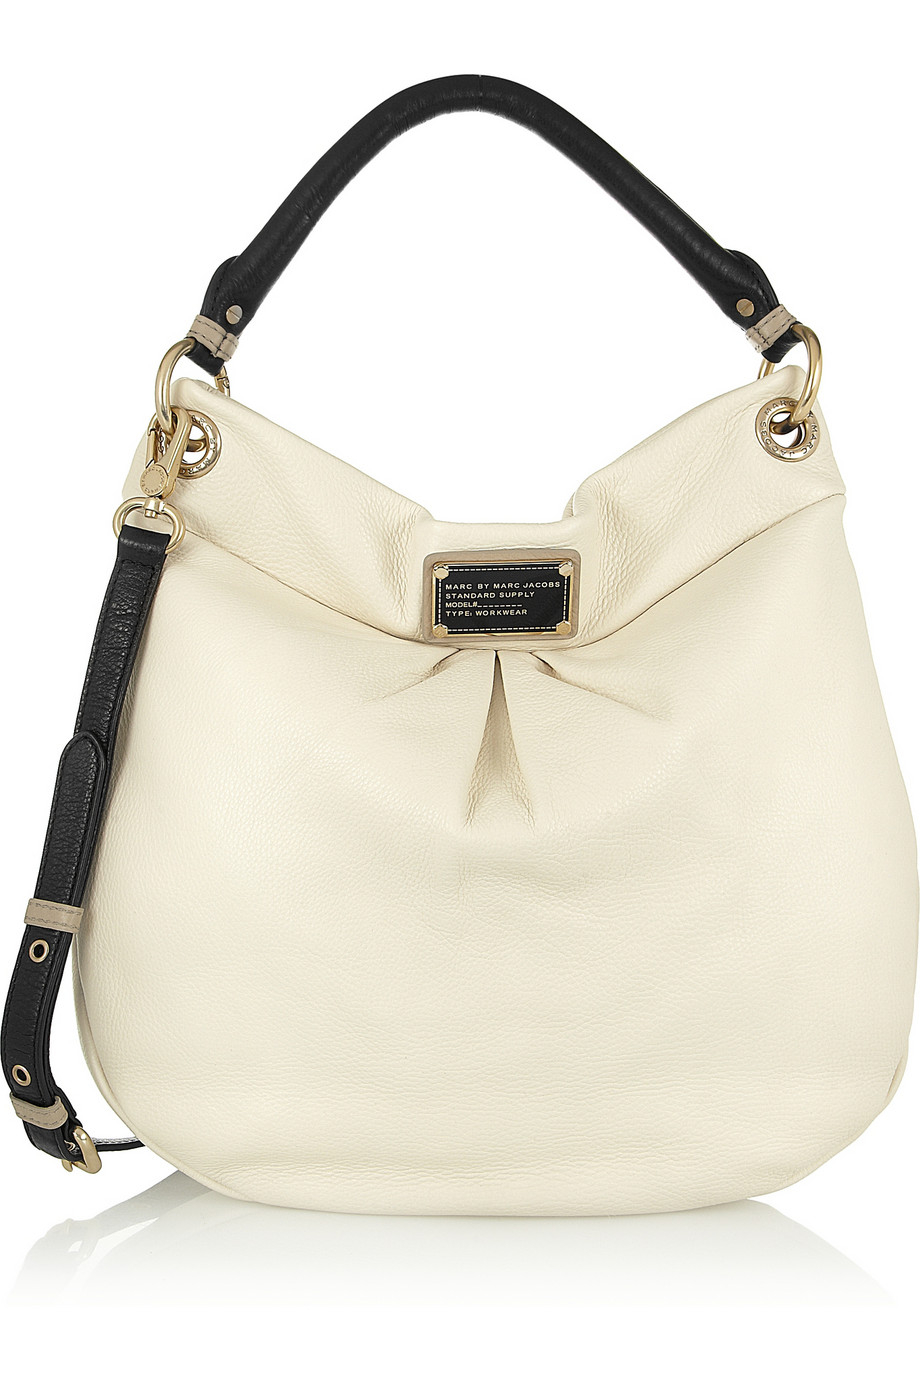 3a2009deef512 Marc By Marc Jacobs Classic Q Hillier Hobo Textured-Leather Shoulder ...